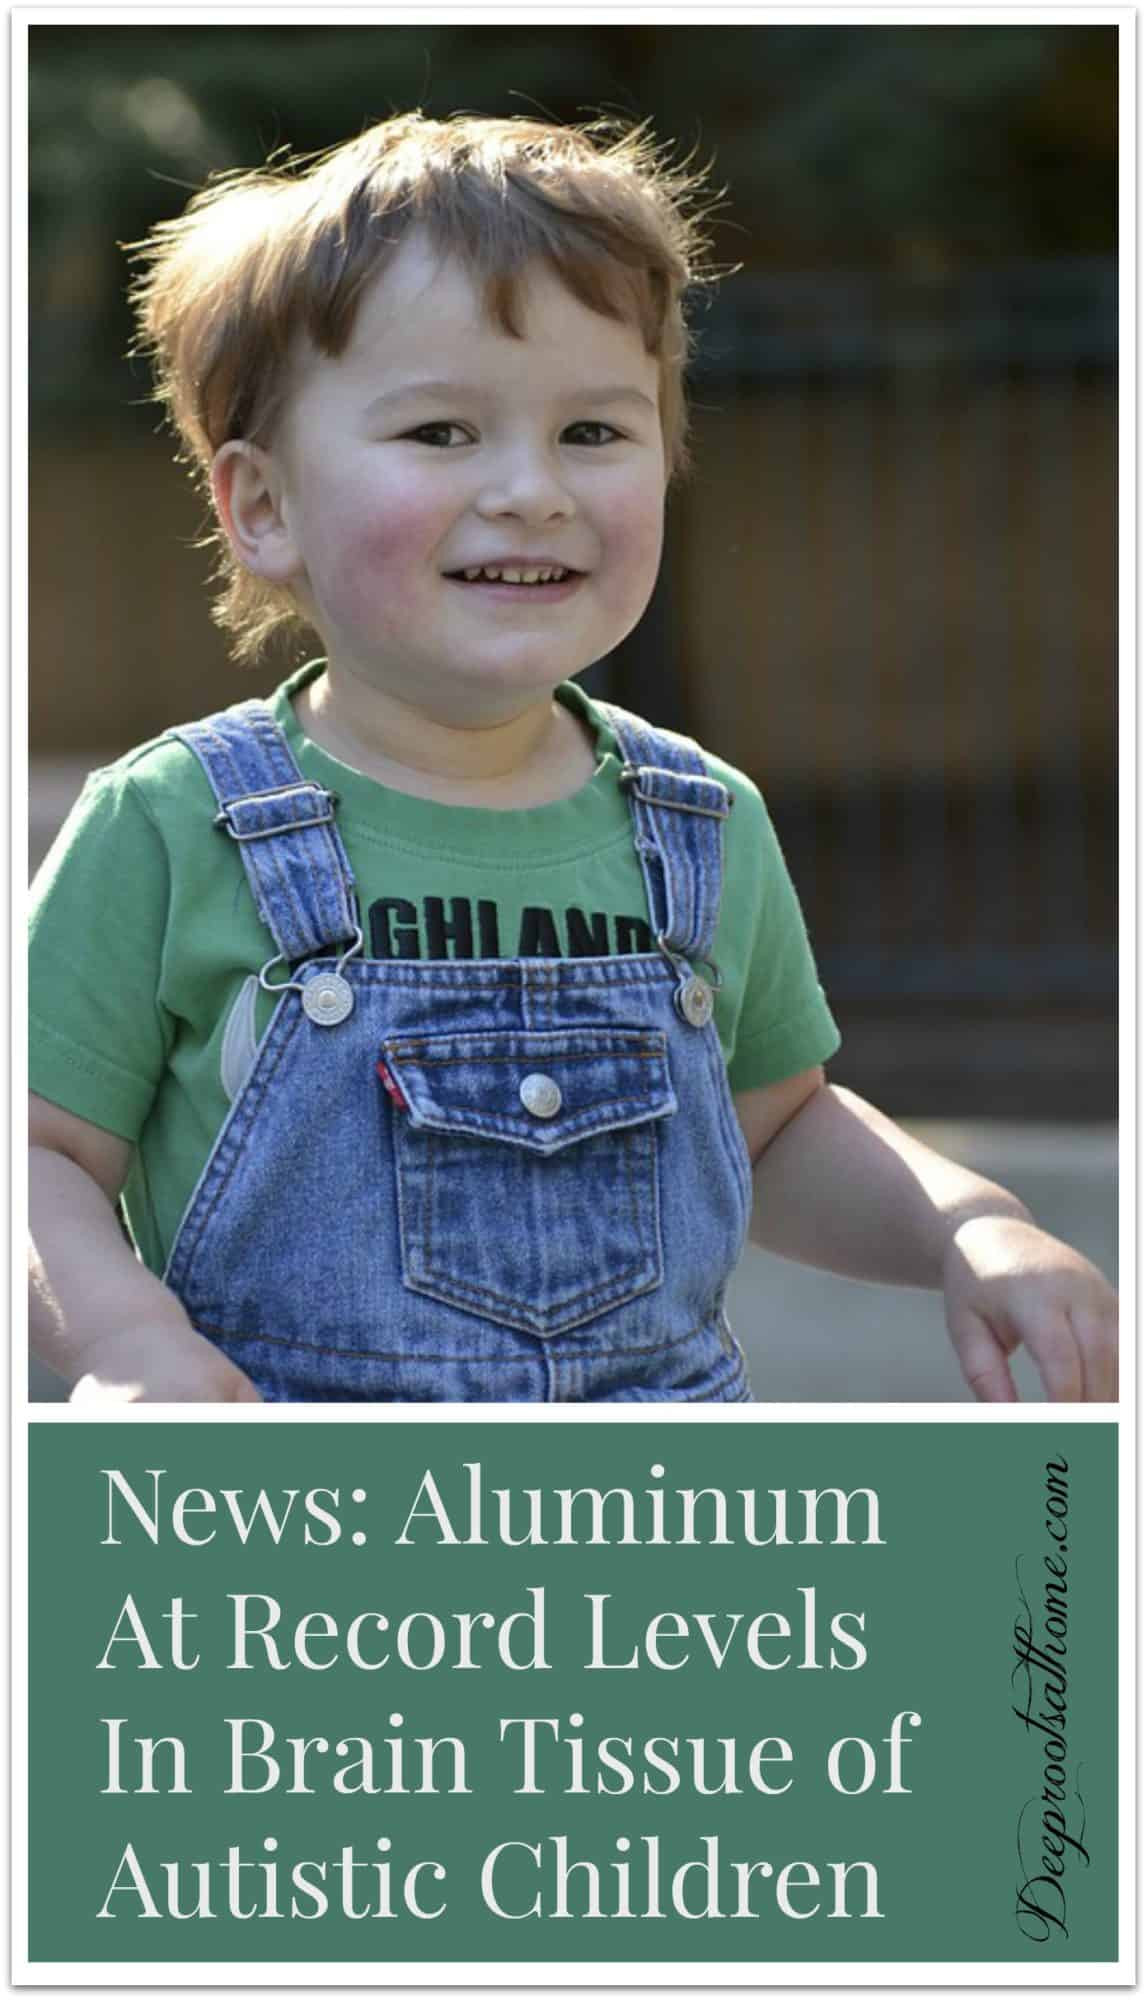 Aluminum At Record Levels In Brain Tissue of Autistic Children, aluminium, parental rights, parents, kids health, freedom, autopsy, study, paper, research, brain tissue, donors, diagnosed, ASD, Alzheimer's Disease, AD, measurements, highest levels, etiology, Elsevier, Science Direct, neurons, microglia, Journal of Trace elements, medicine, biology, authors, Chris Exley, early onset diabetes, familial, occipital, frontal, temporal, parietal, hippocampus, lobes, ingested, injected, jab, mercury, Human exposure to aluminium, human brain tissue; autism spectrum disorder; transversely heated atomic absorption spectrometry; aluminium-selective fluorescence microscopy, Oxford Brain Bank, pediatric brain bank, neurodevelopment delays, environmental toxins, environmental causes, diagnosis, neurodevelopmental disorders, dysfunction, brain development, synaptic connectivity, consequences, gradual onset of ASD, cytotoxic, compromised, mercury intolerance, infants, FDA, childhood vaccines, evidence, neuropathology, why we didn't vaccinate, Robert W. Sears, Ask Dr. Sears, unbiased, objective, new adjuvants,